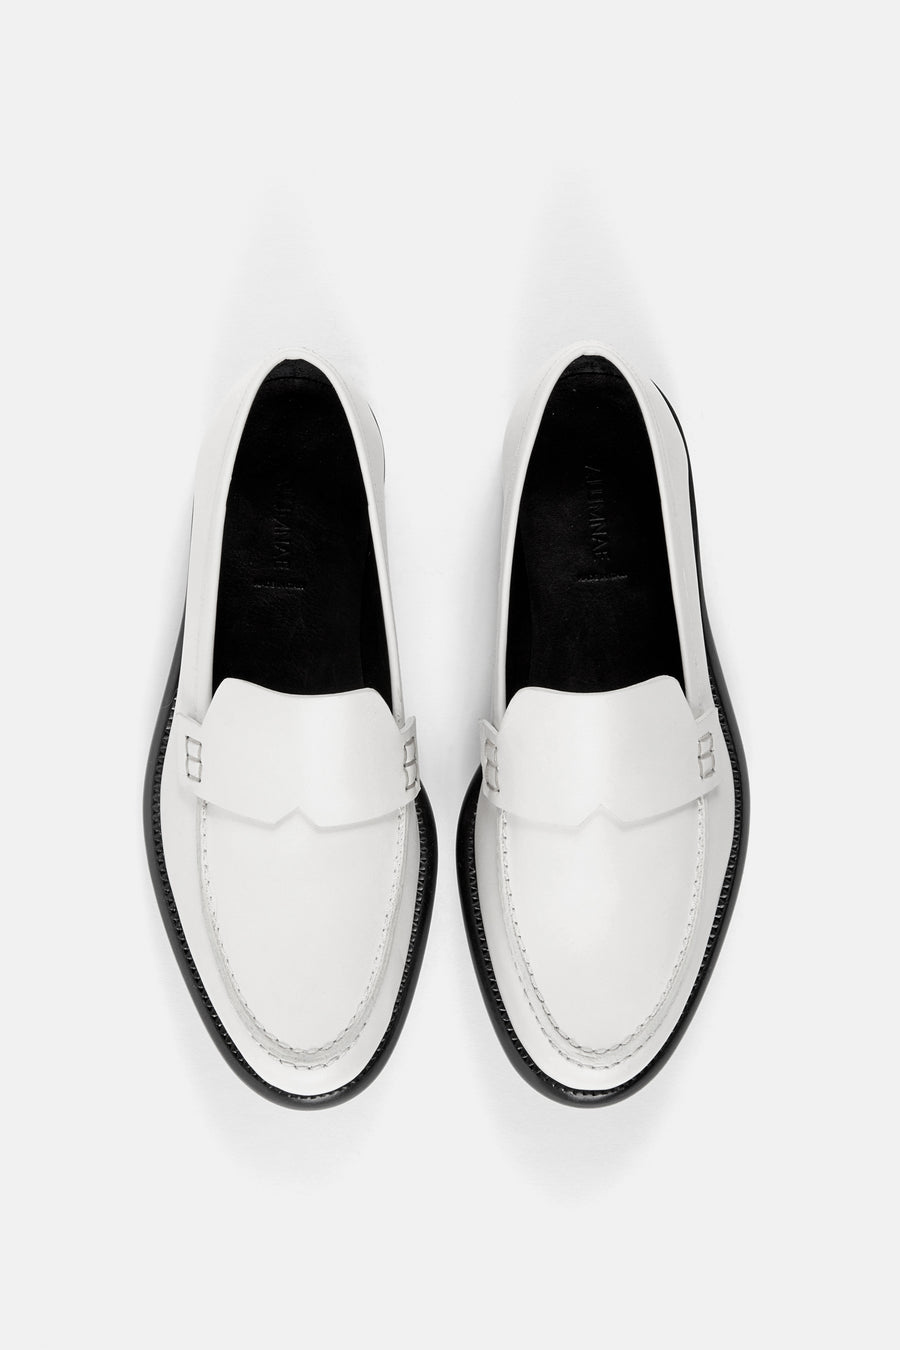 Minimalist Loafer Chalk White Calf.